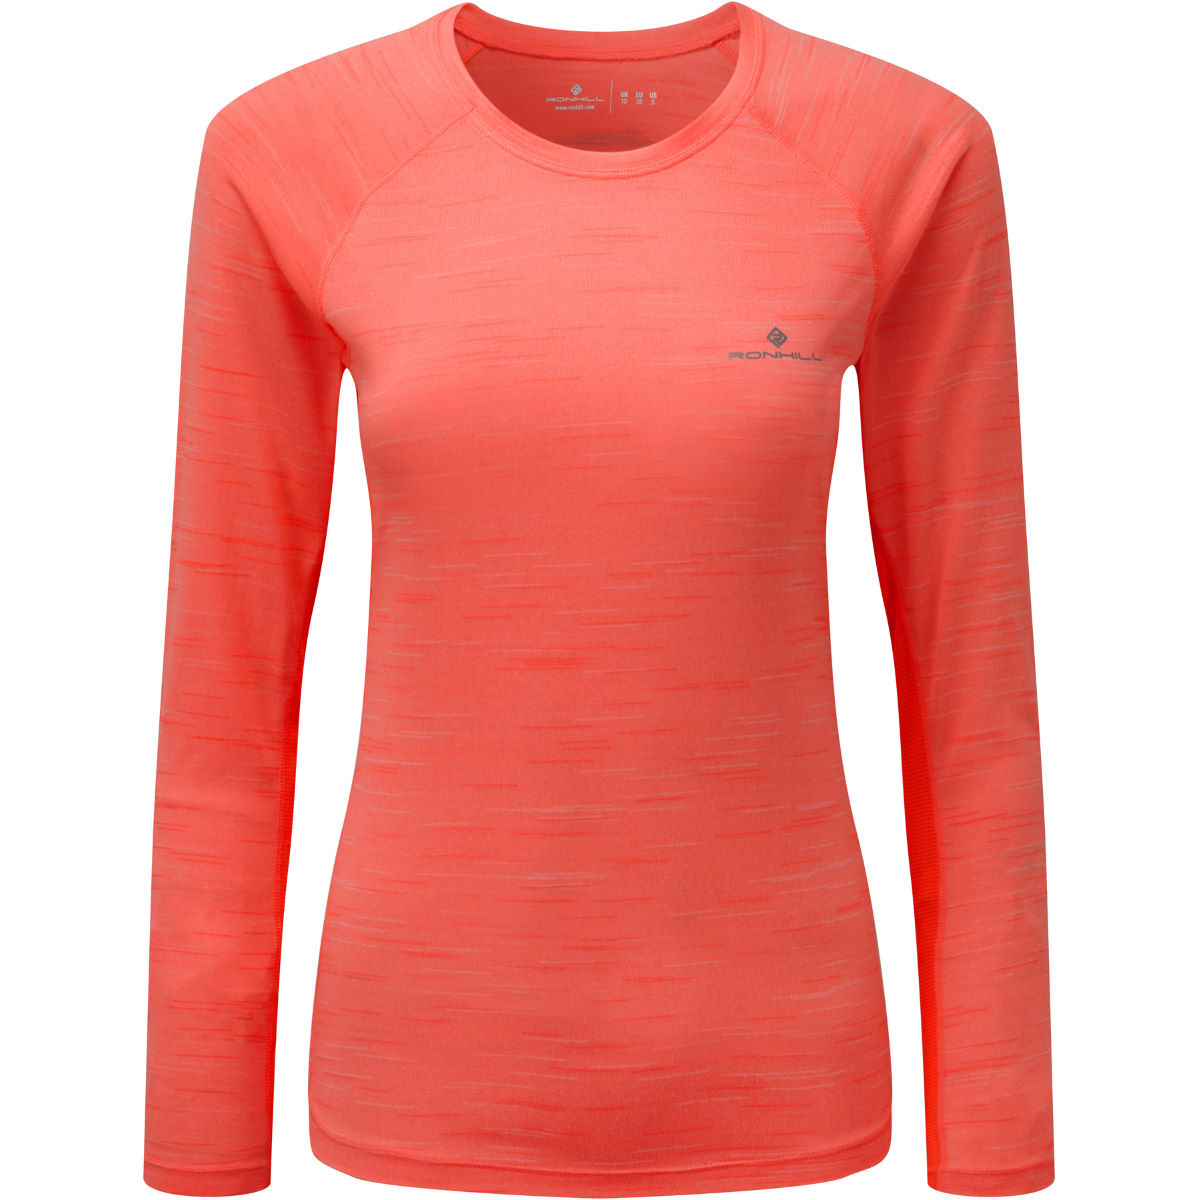 Maillot Femme Ronhill Momentum (manches longues) - XS